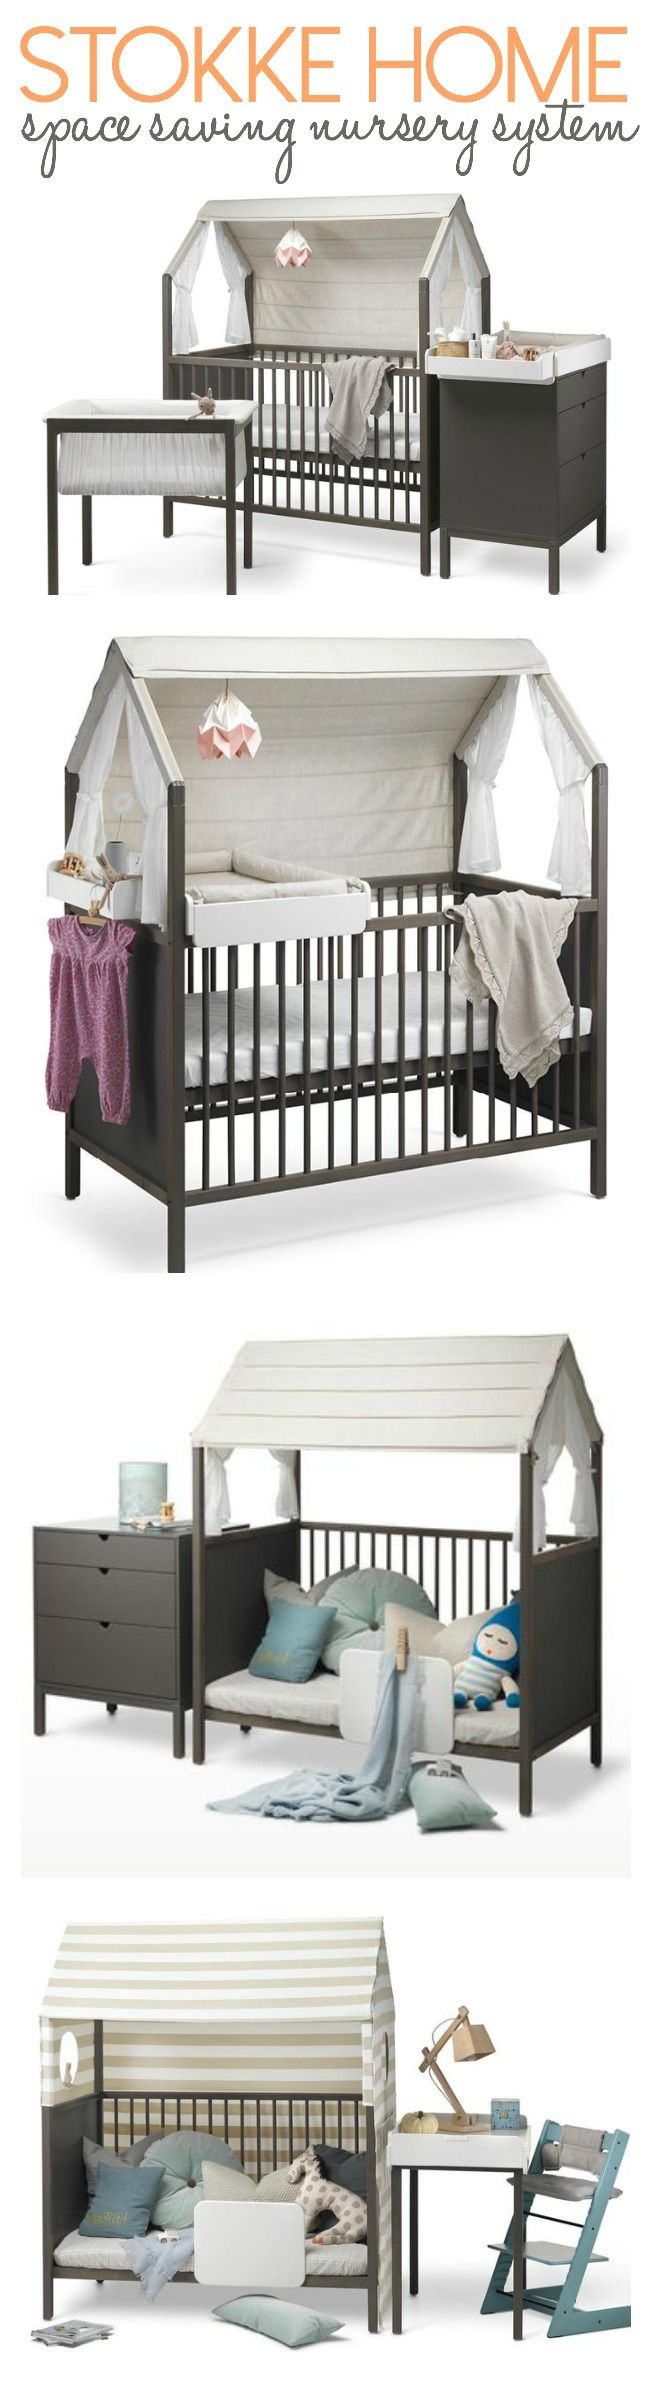 Baby cribs big w - Stokke Home Little Nursery With Big Possibilities Baby Bedsbaby Cribsweb